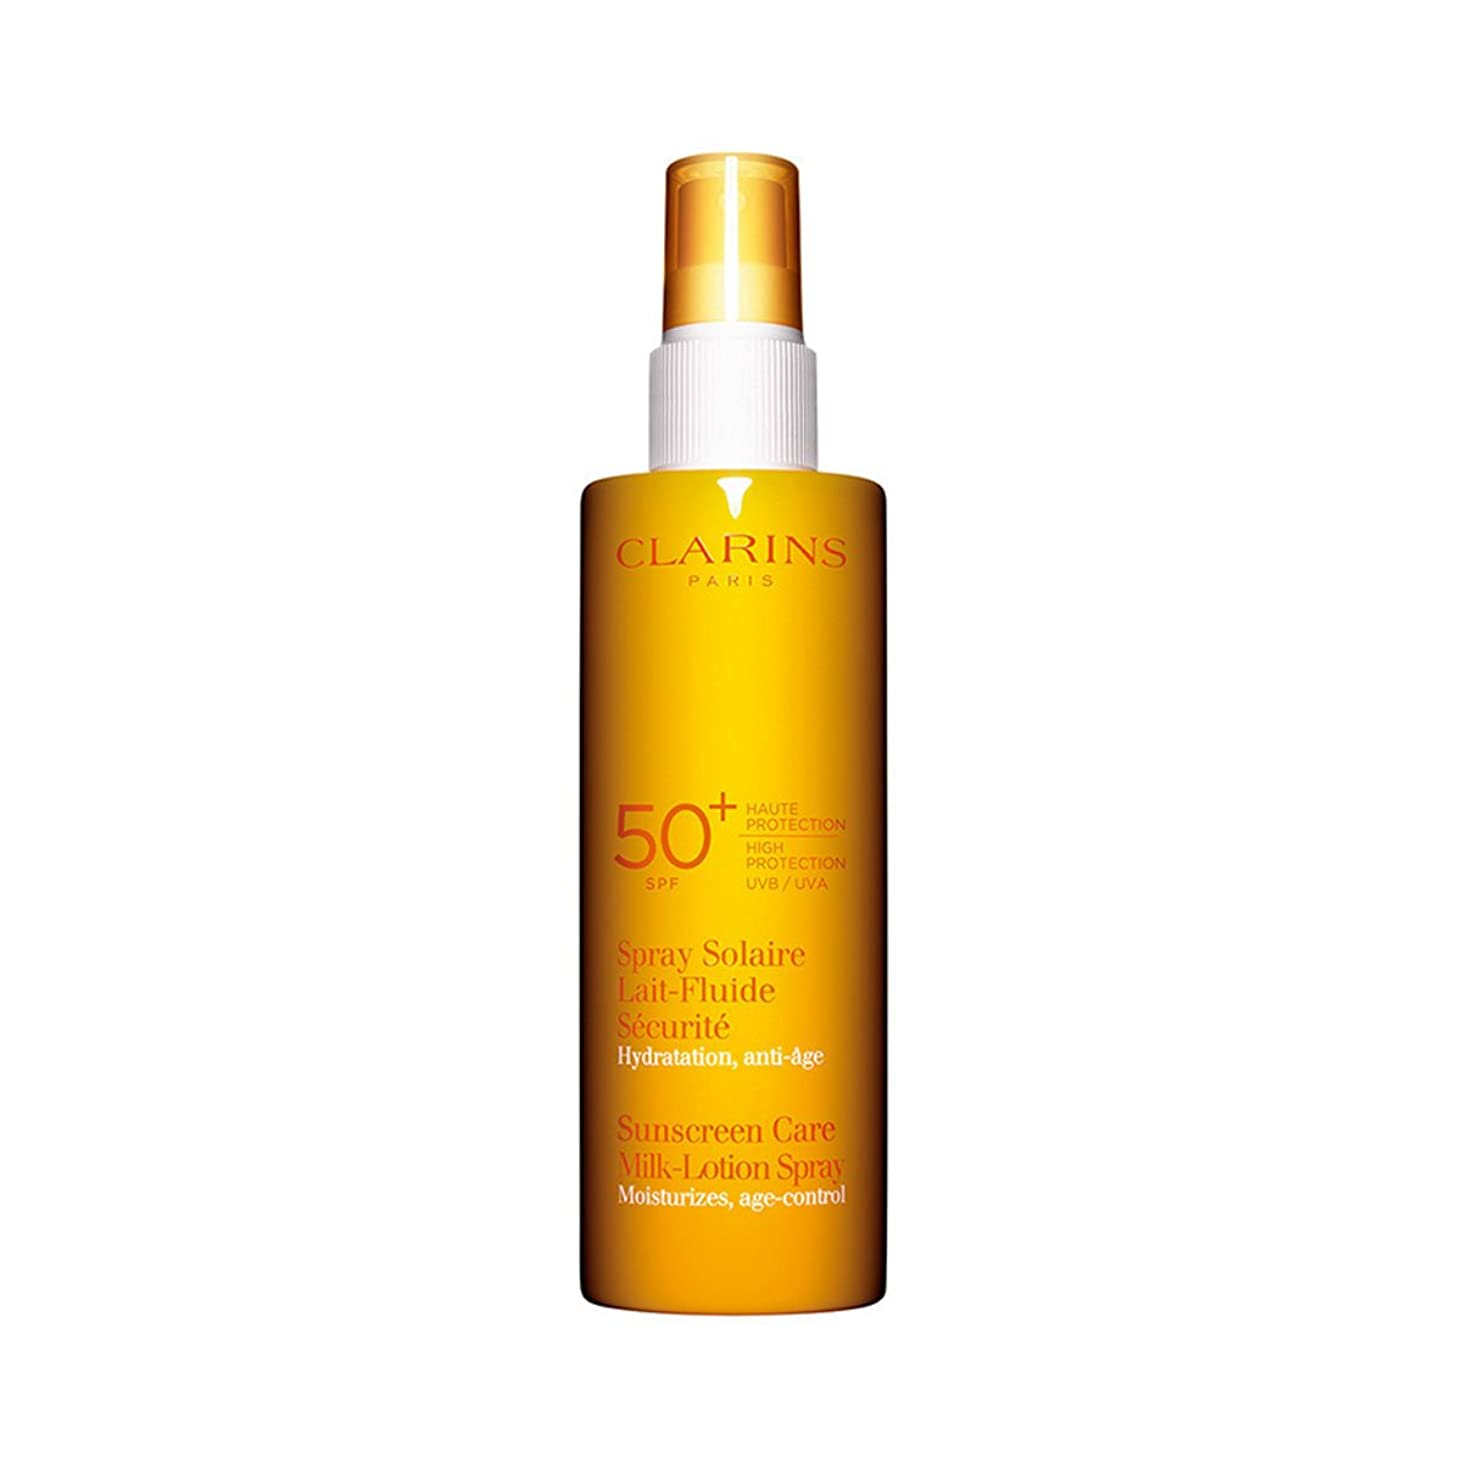 腸ブルーム寮Clarins Sun Care Milk-lotion Spray Uva/uvb 50 150ml [並行輸入品]